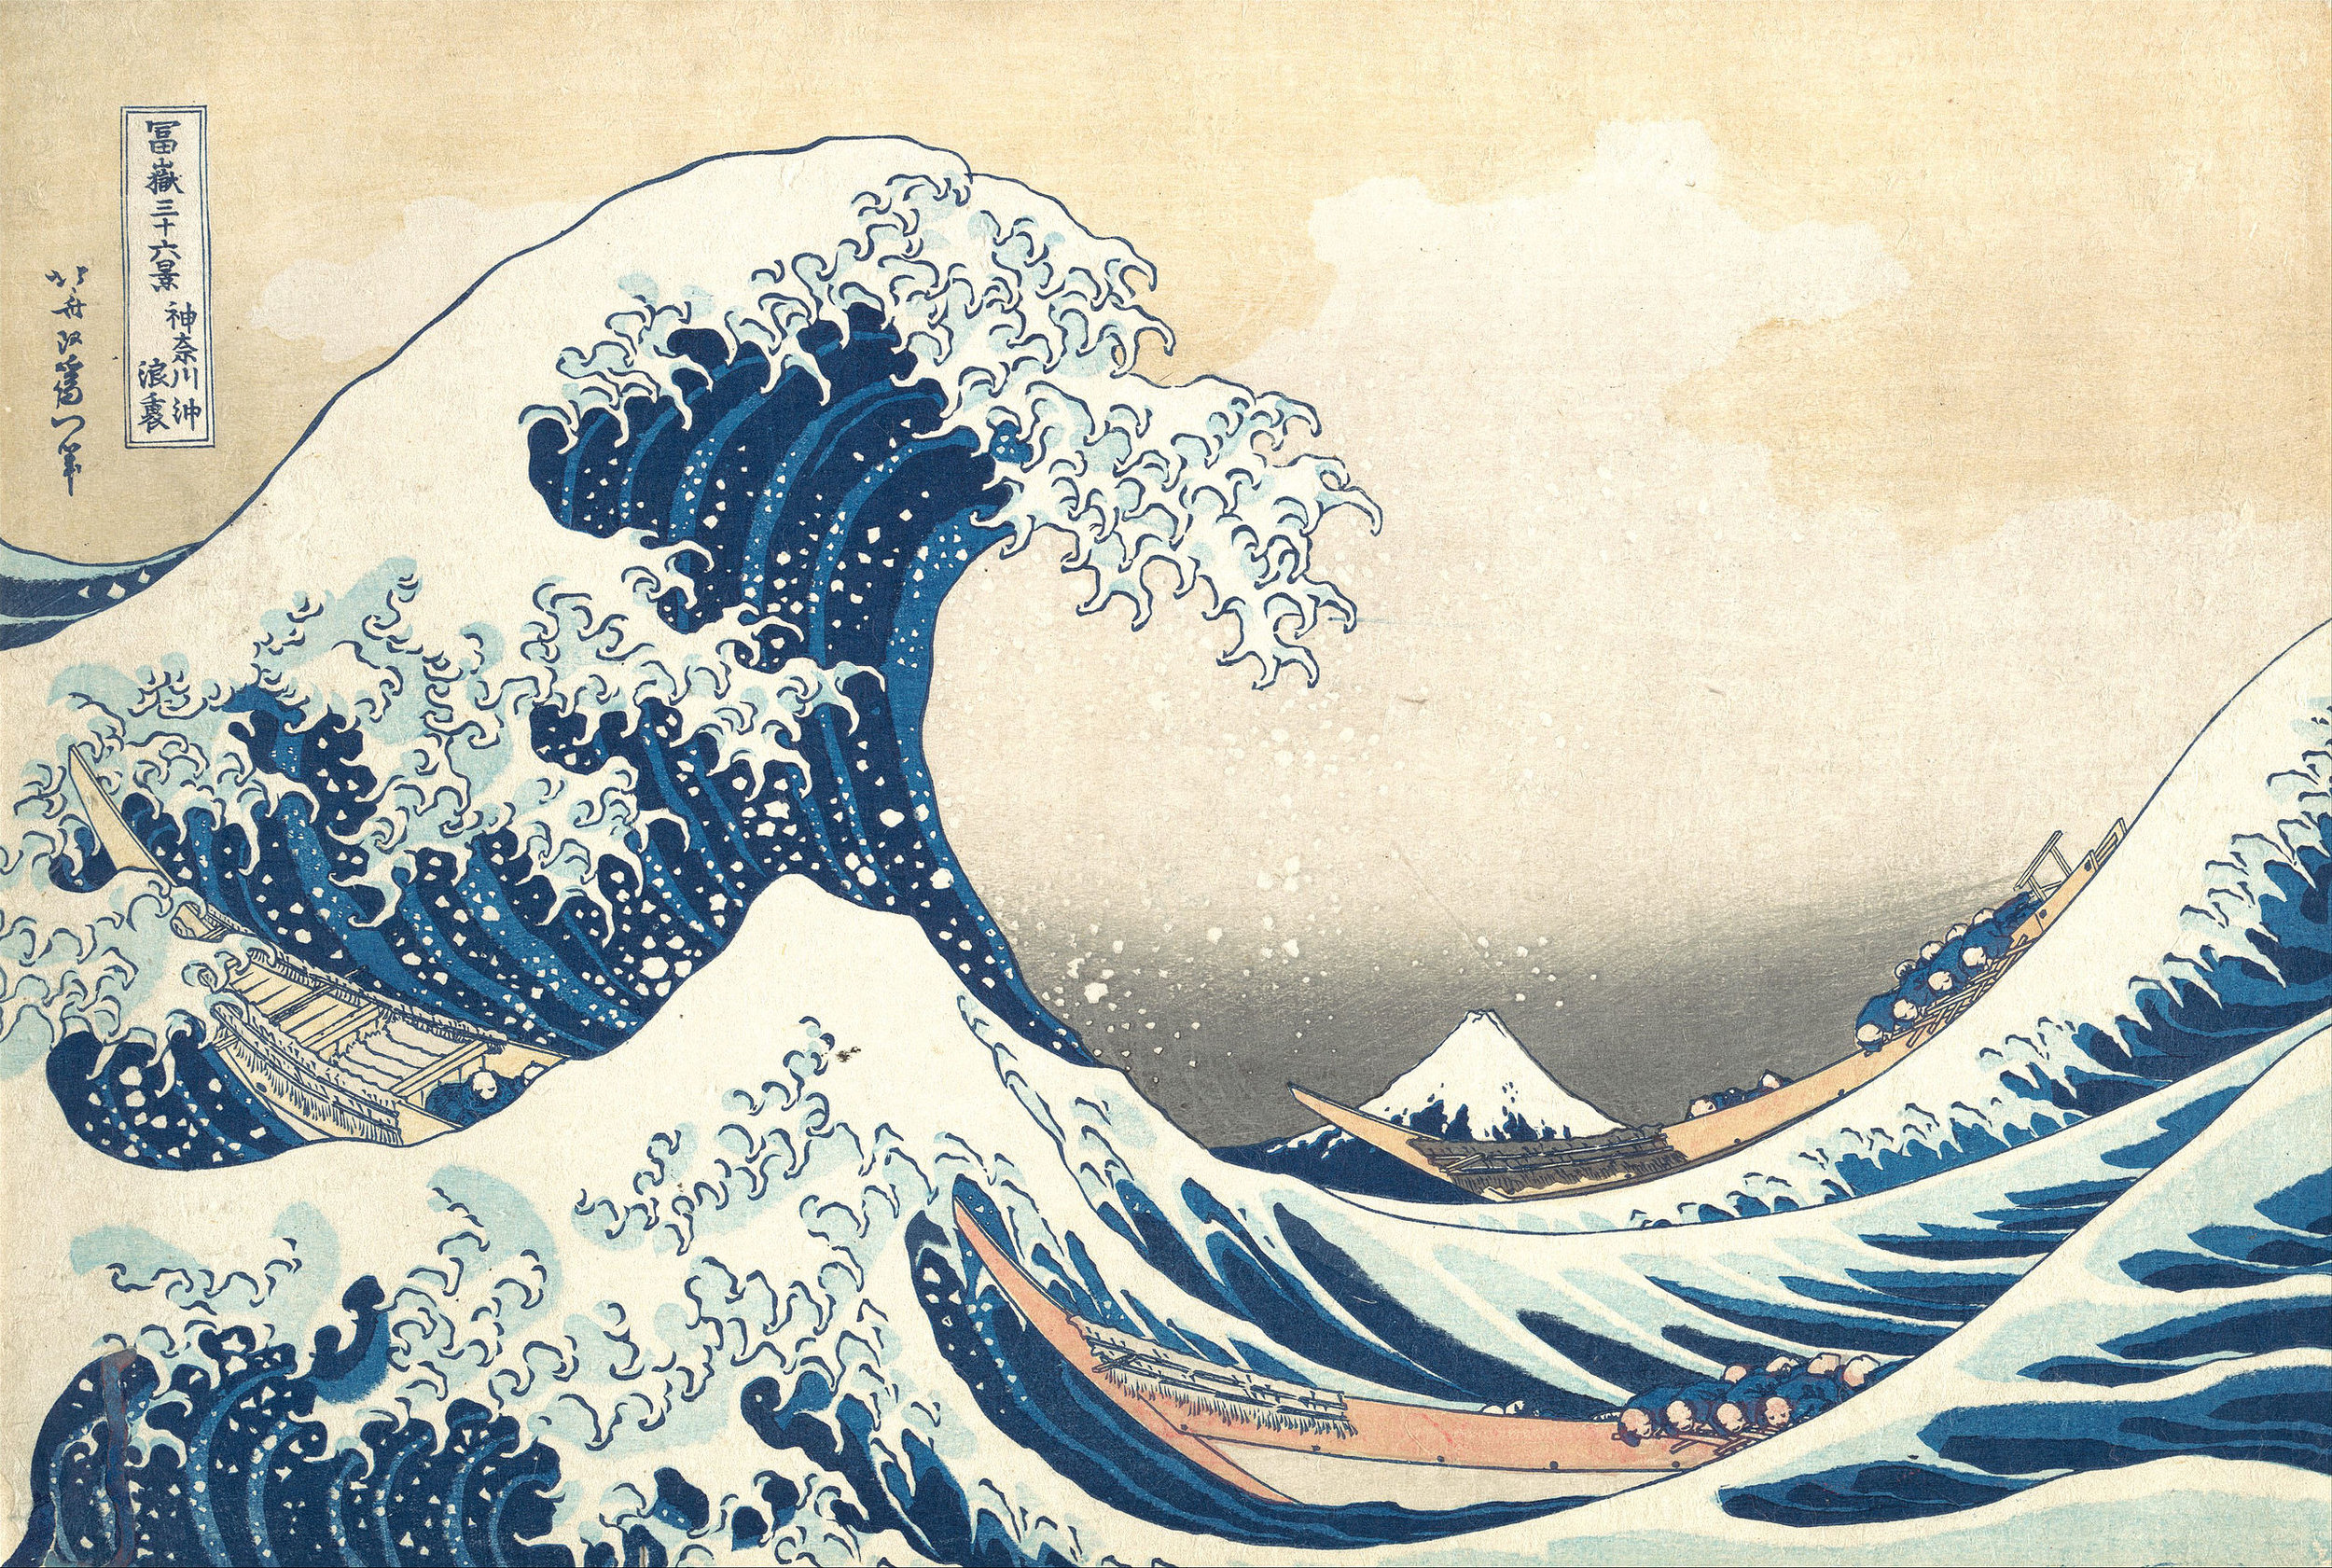 isitzen-Tsunami_by_hokusai_19th_century-information.jpg